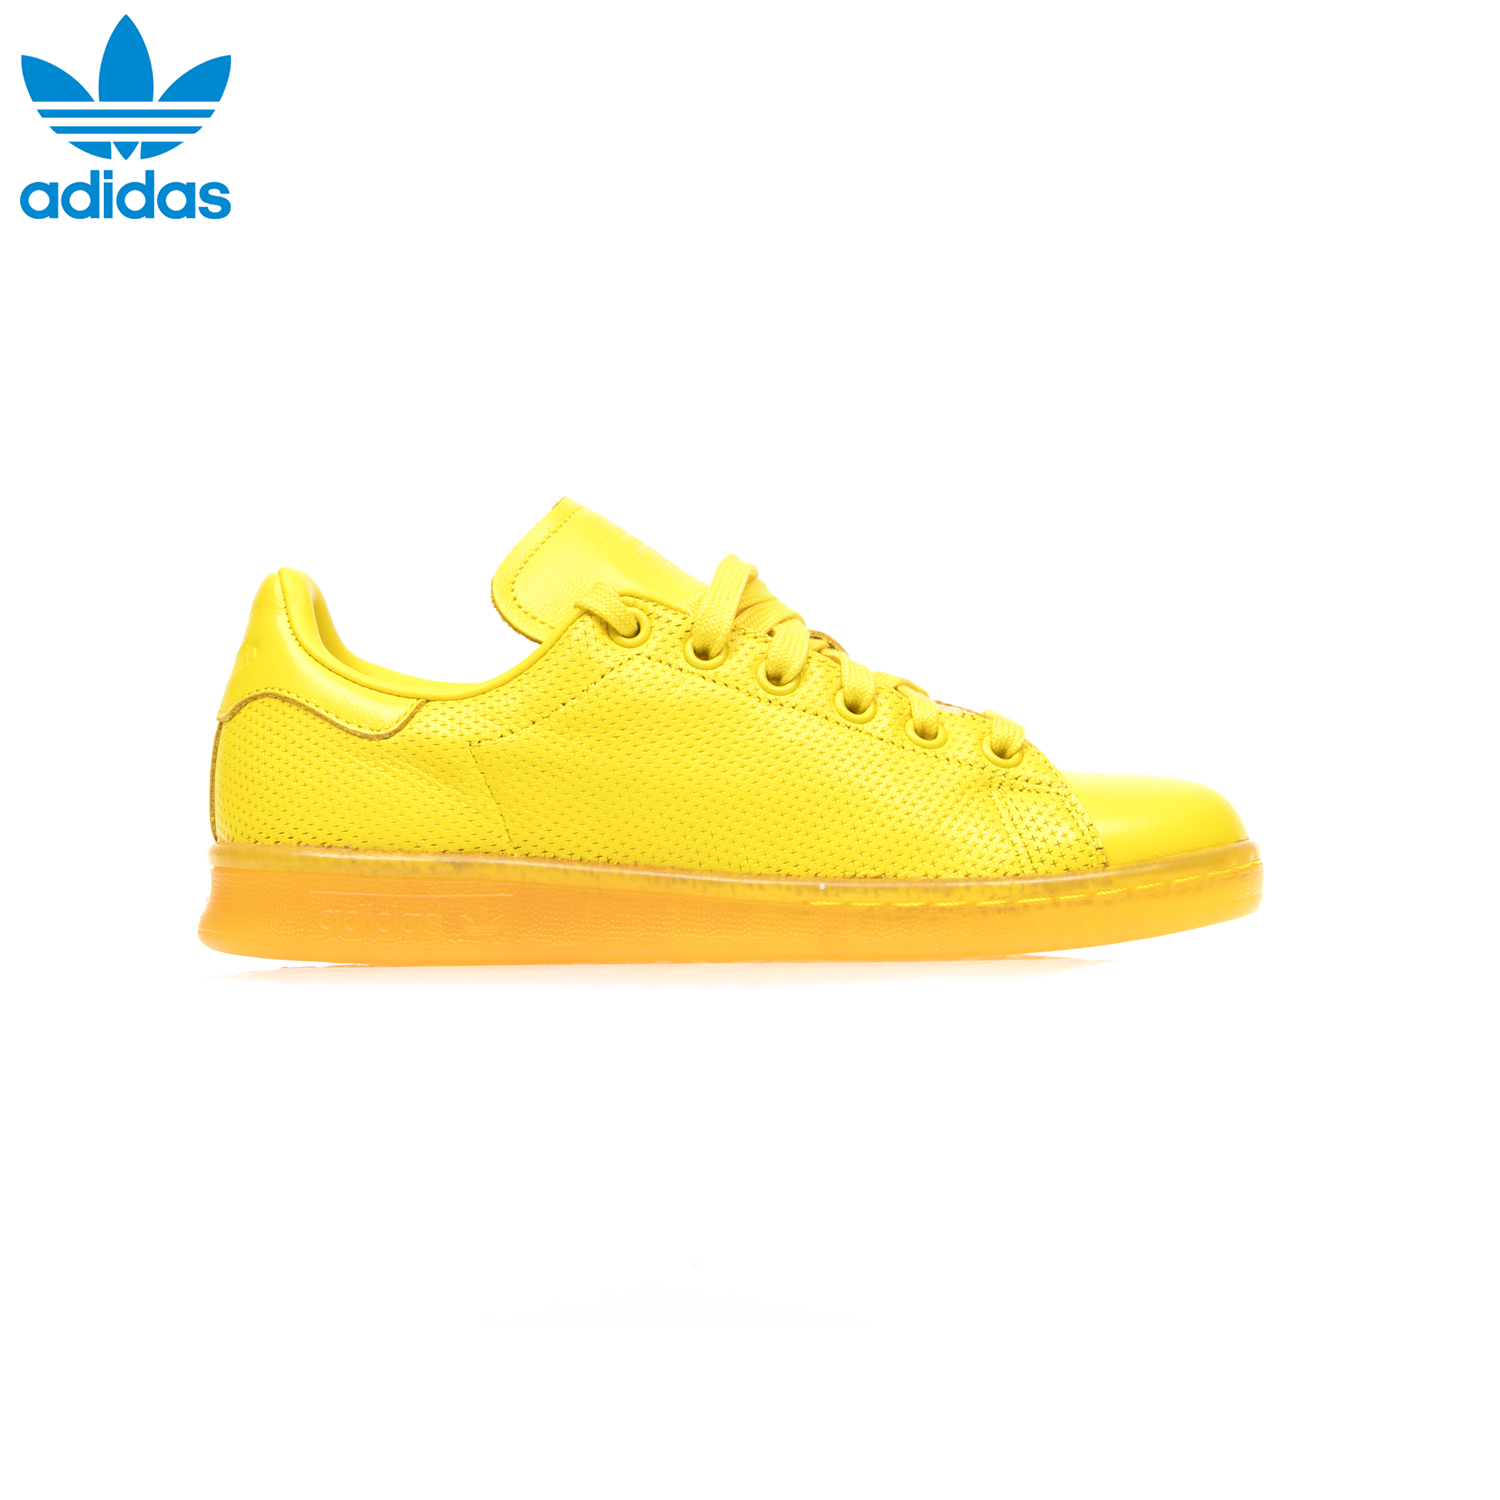 ADIDAS – Unisex παπούτσια adidas STAN SMITH ADICOLOR κίτρινα